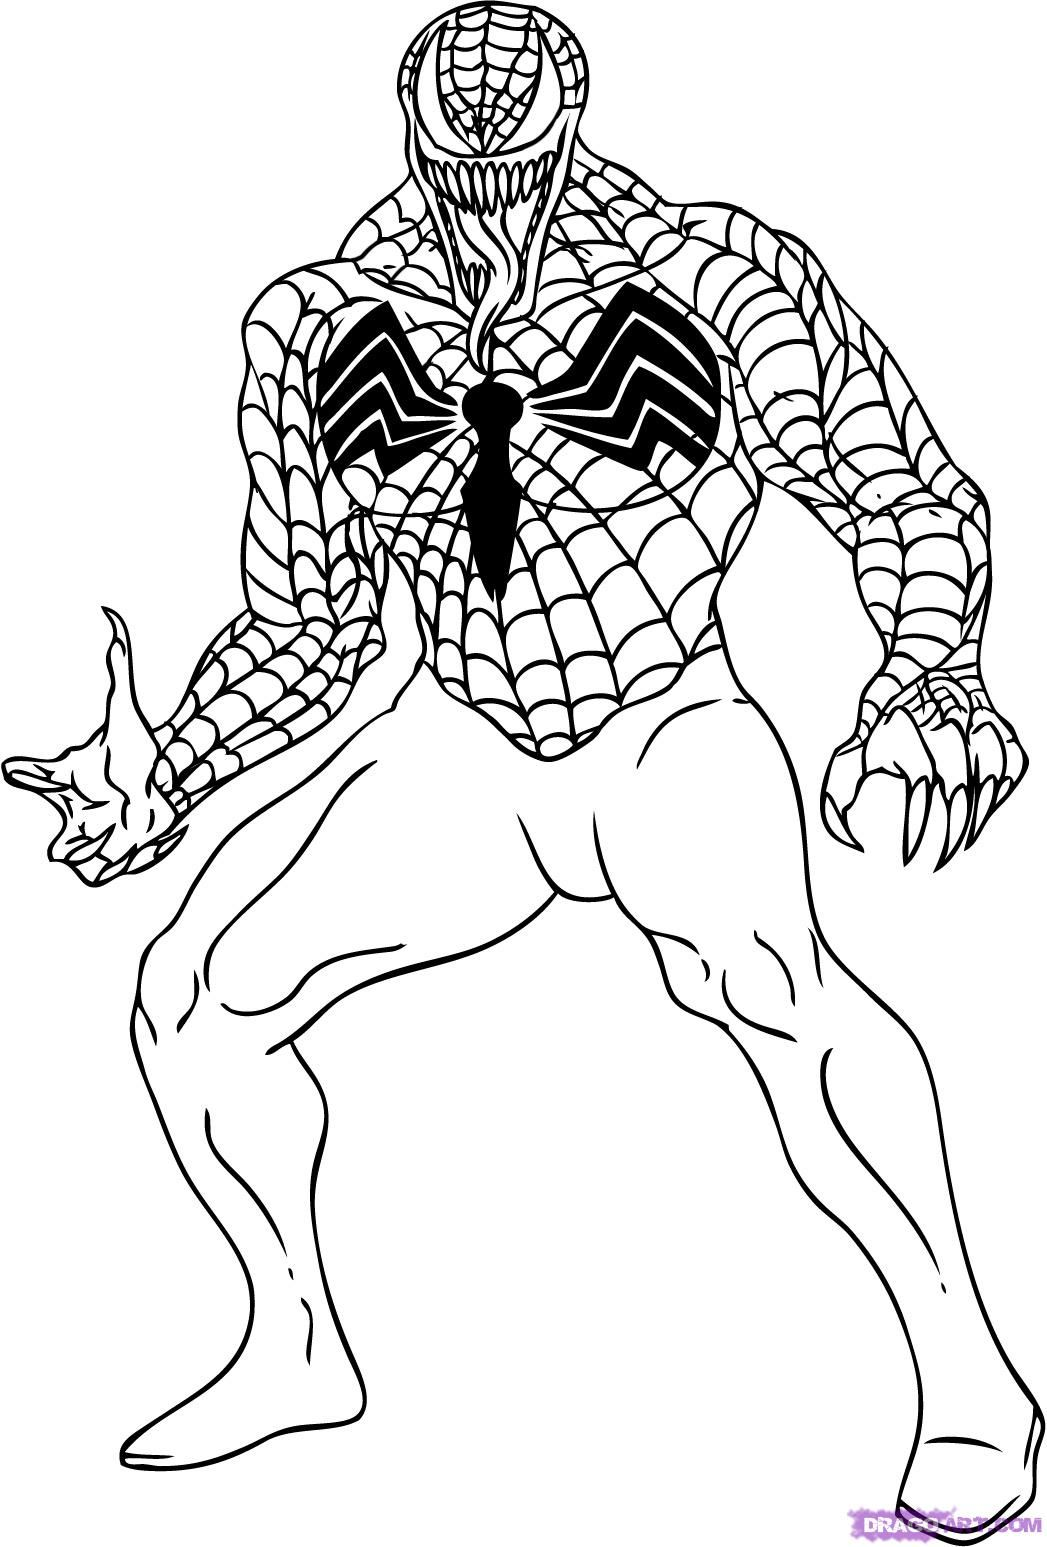 10 Spiderman Happy Birthday Coloring